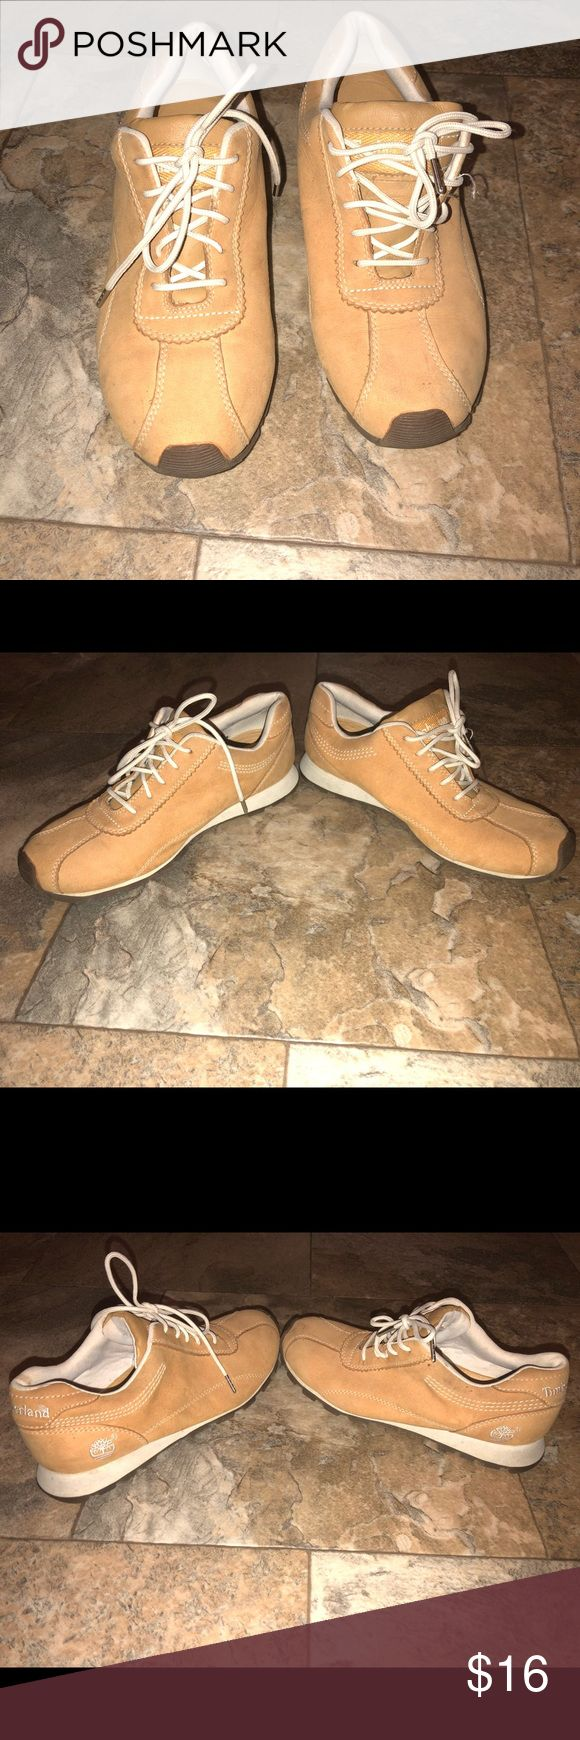 Timberland Sneakers Euc Size 6 Timberland Sneakers Euc Size 6 minor wear/ marks shown in pictures Timberland Shoes Sneakers